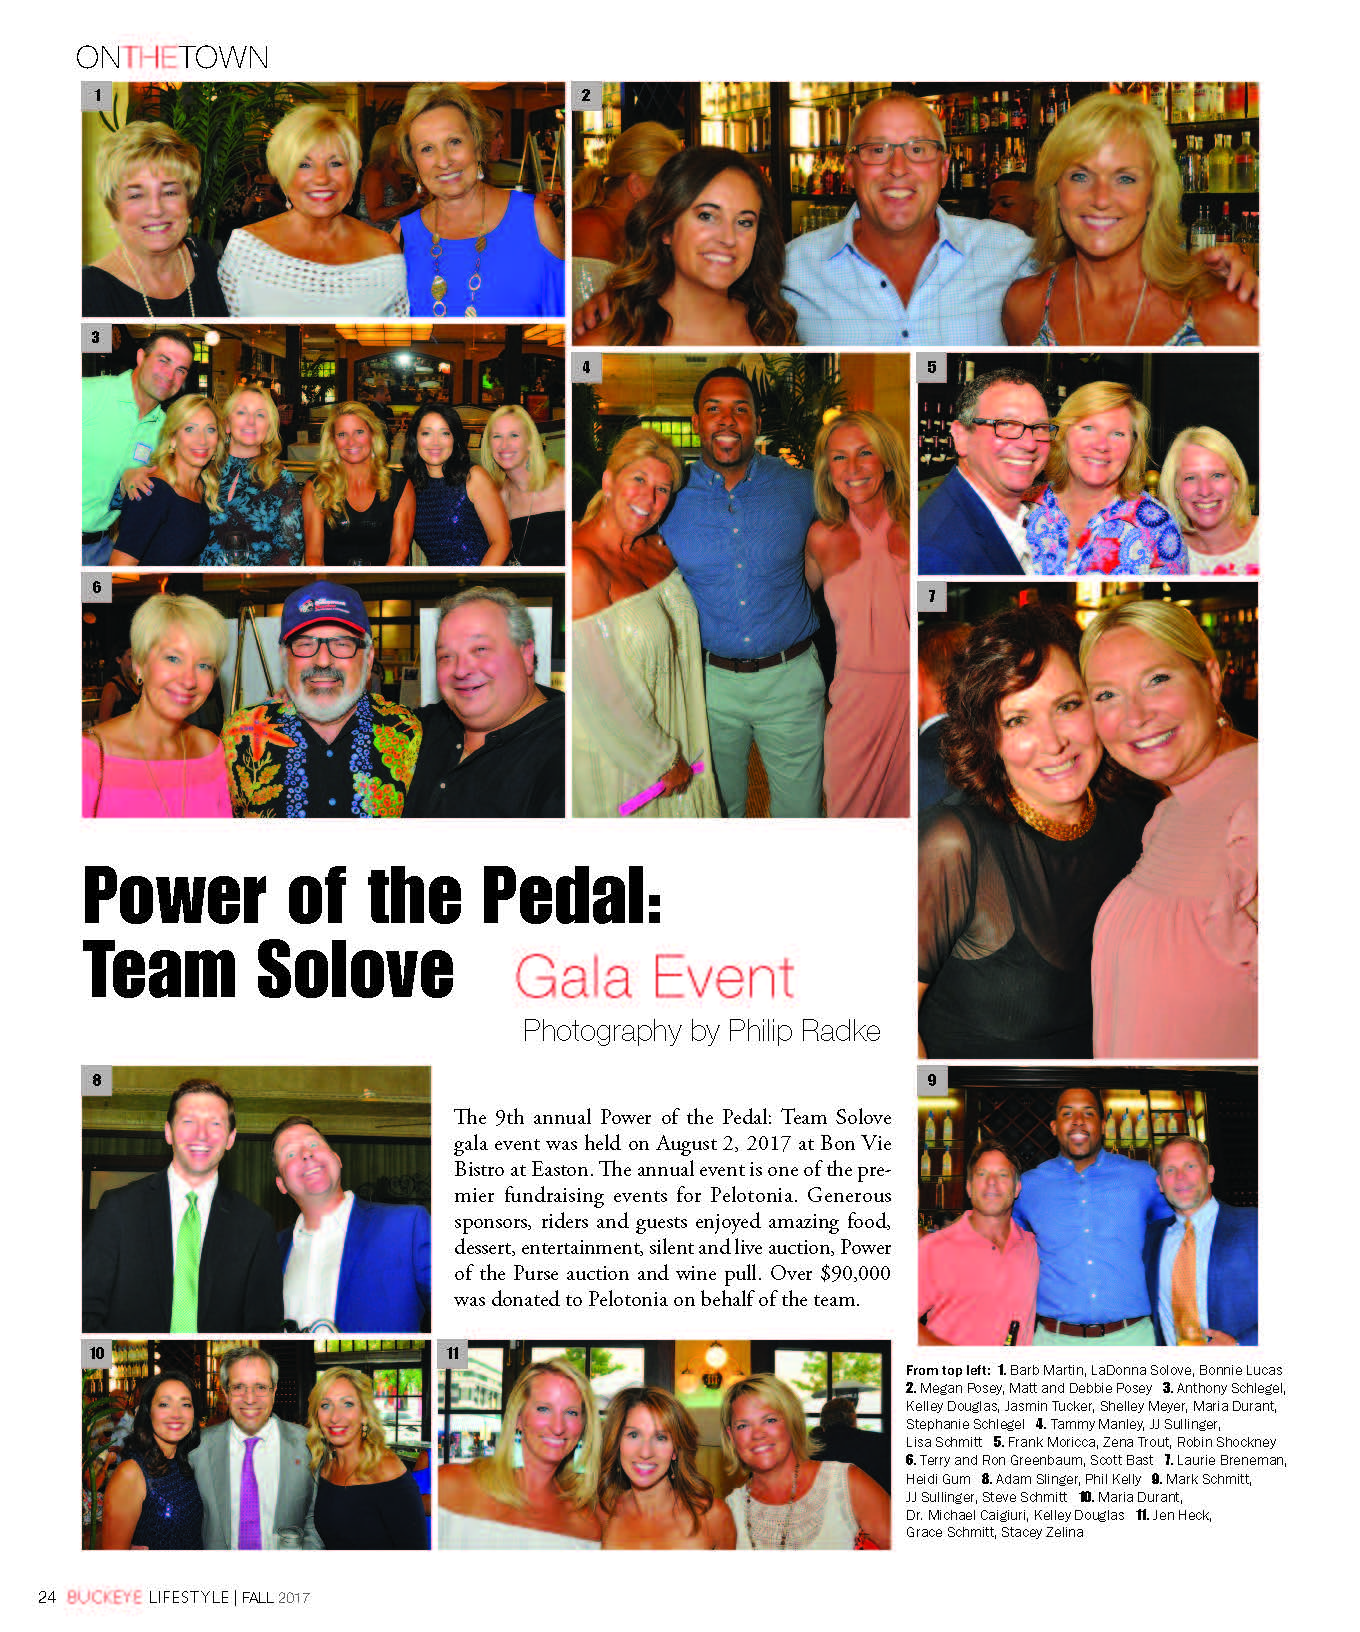 Power of the Pedal – Team Solove